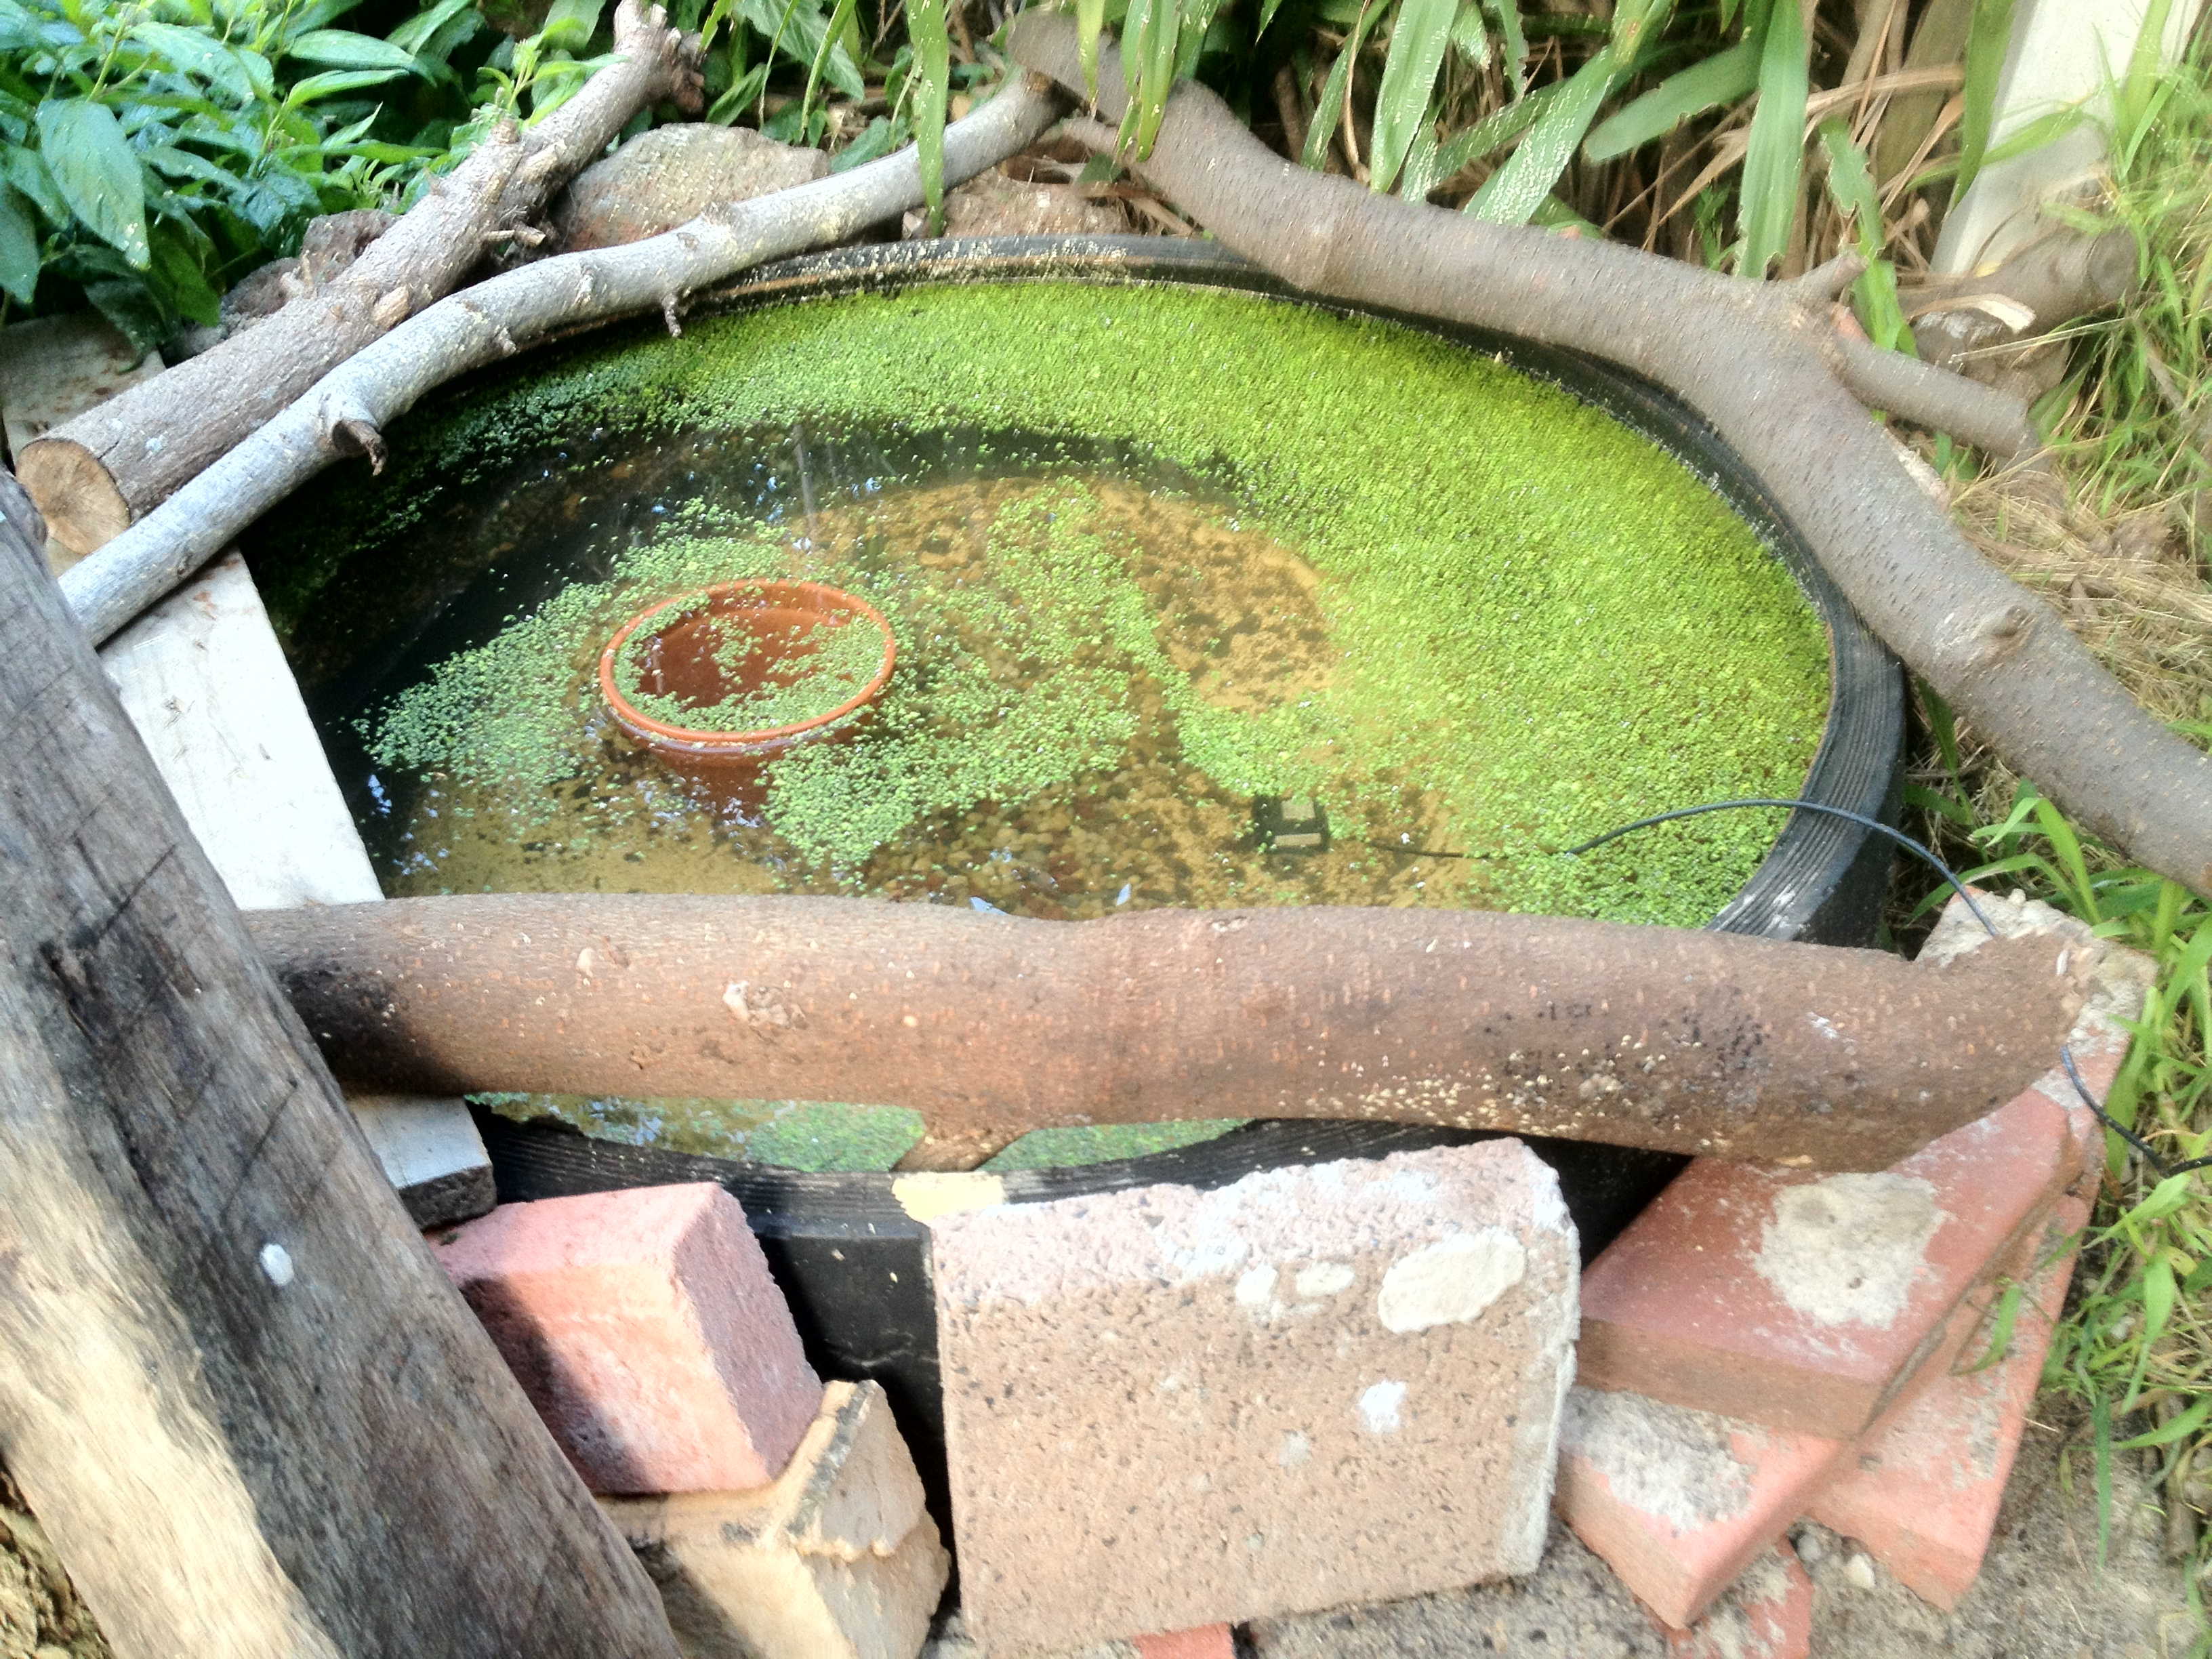 How to build a pond from tires ground to ground for Pond in a pot with fish